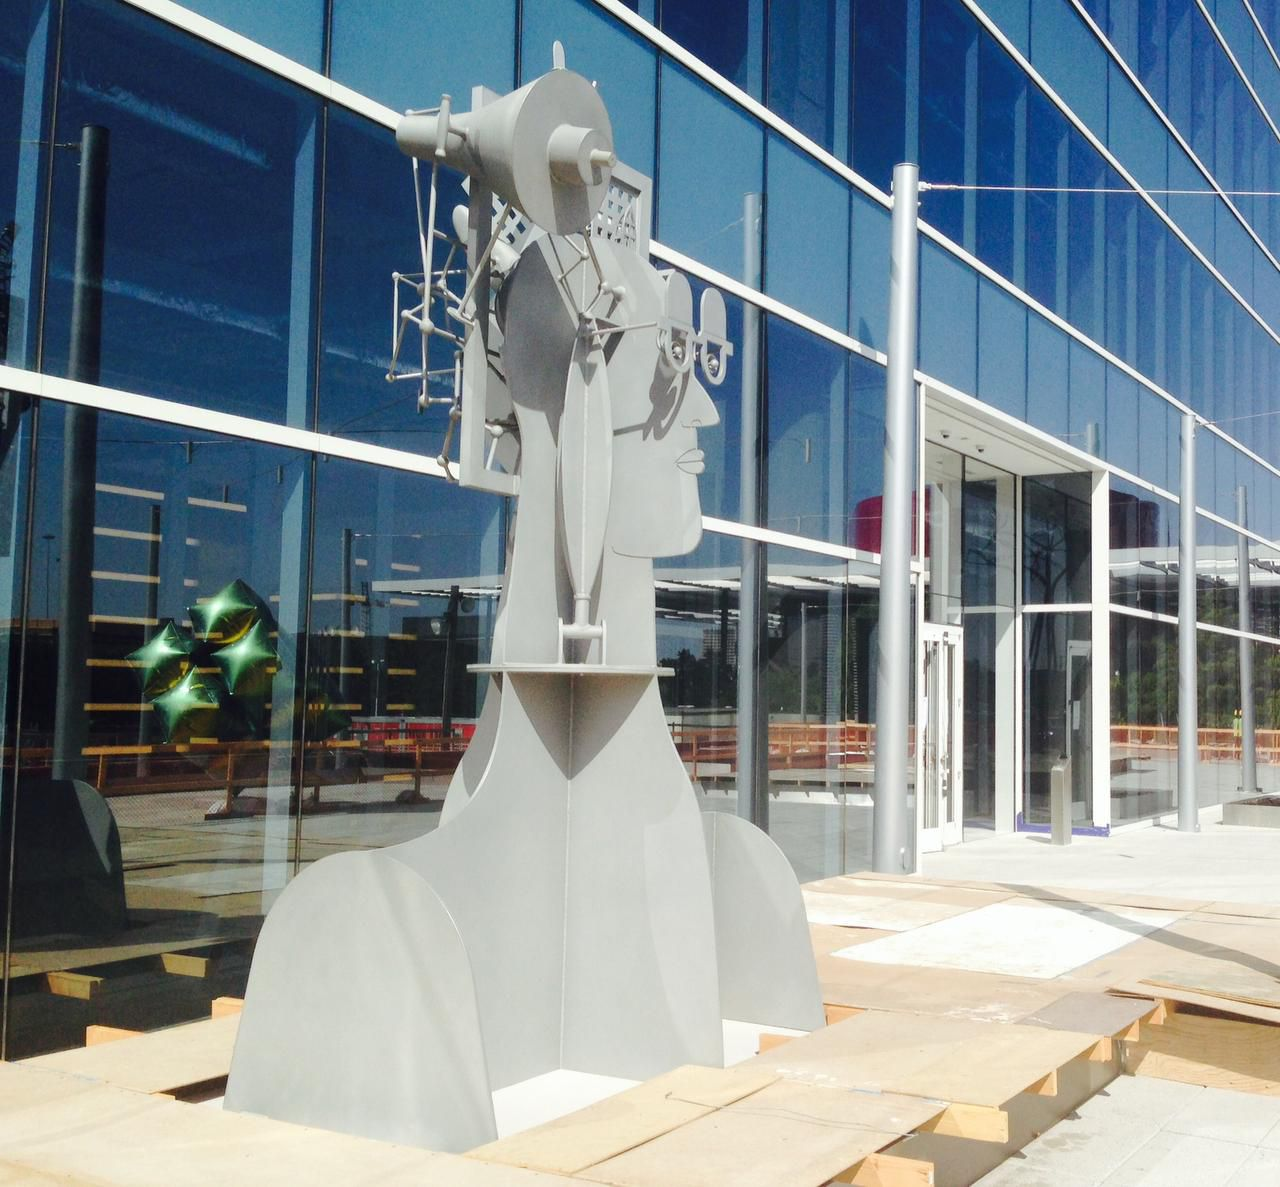 Downtown Dallas' new KPMG Plaza office tower is opening its